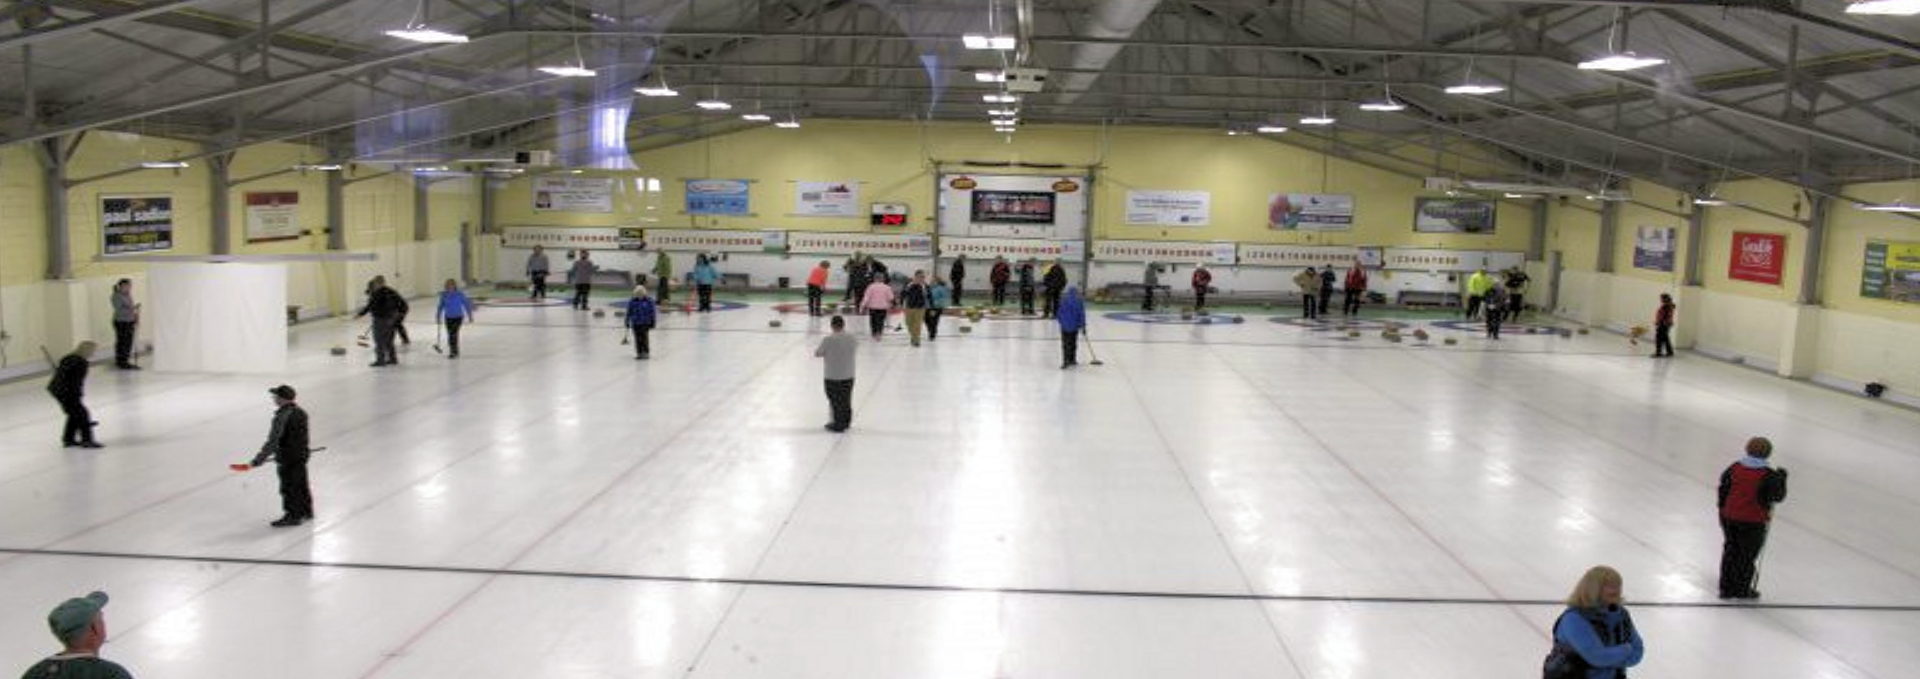 Barrie Curling Club